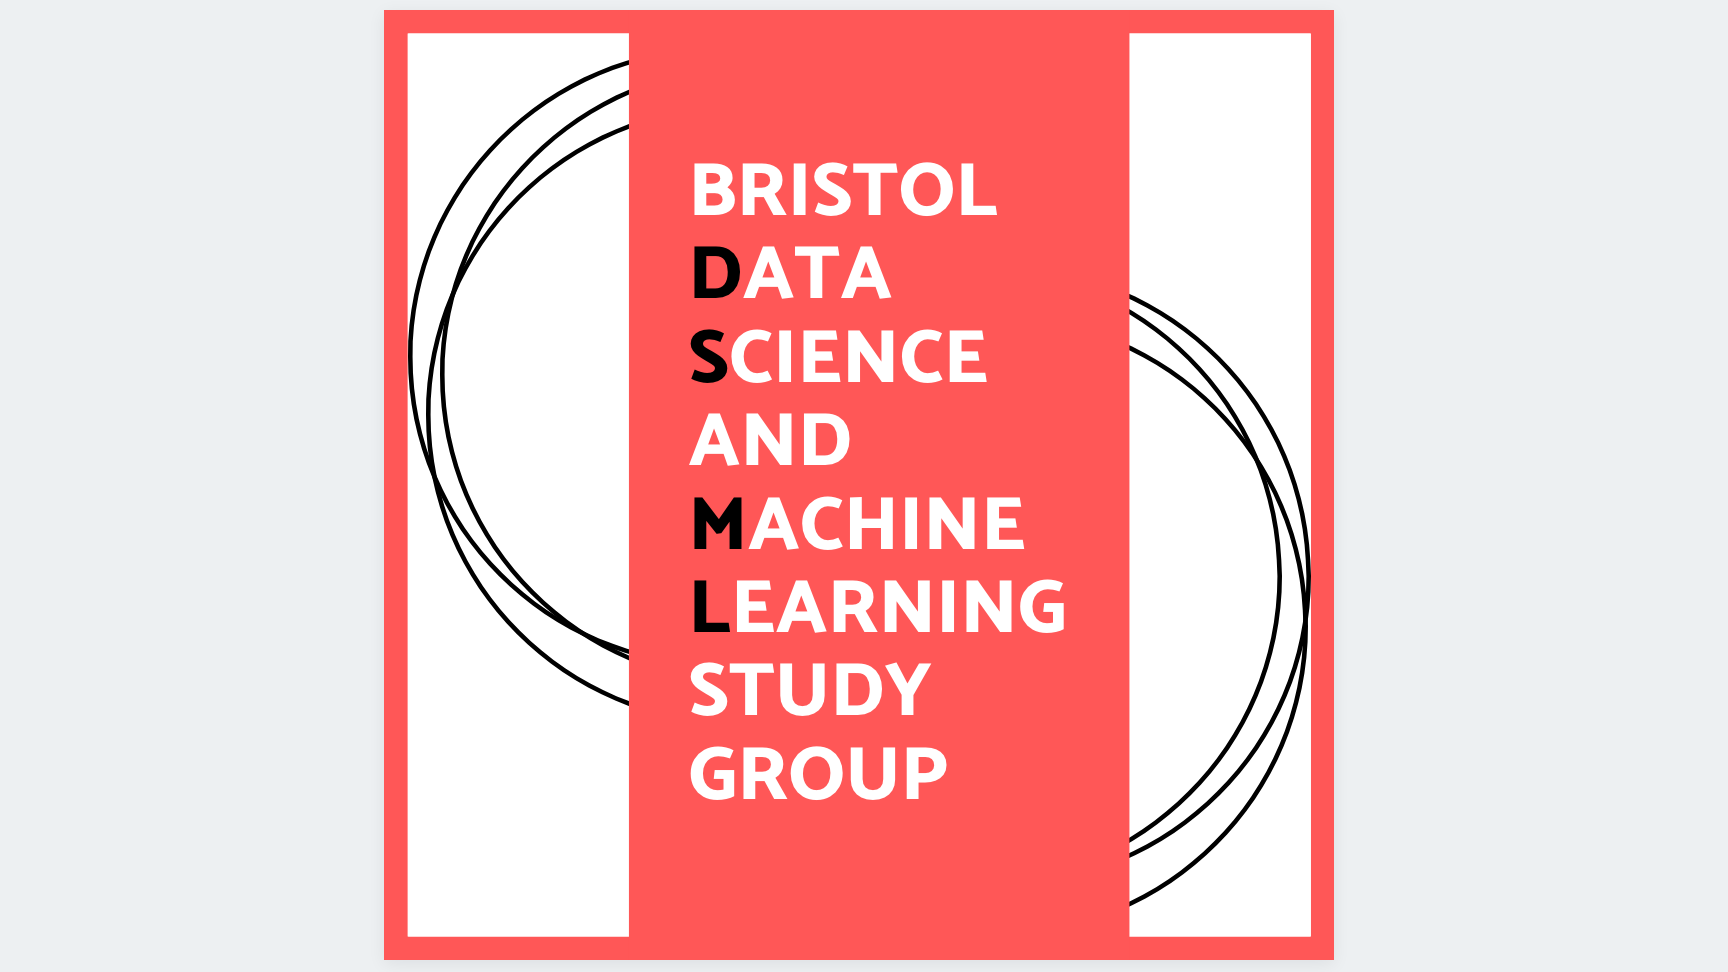 Bristol Data Science and Machine Learning Study Group